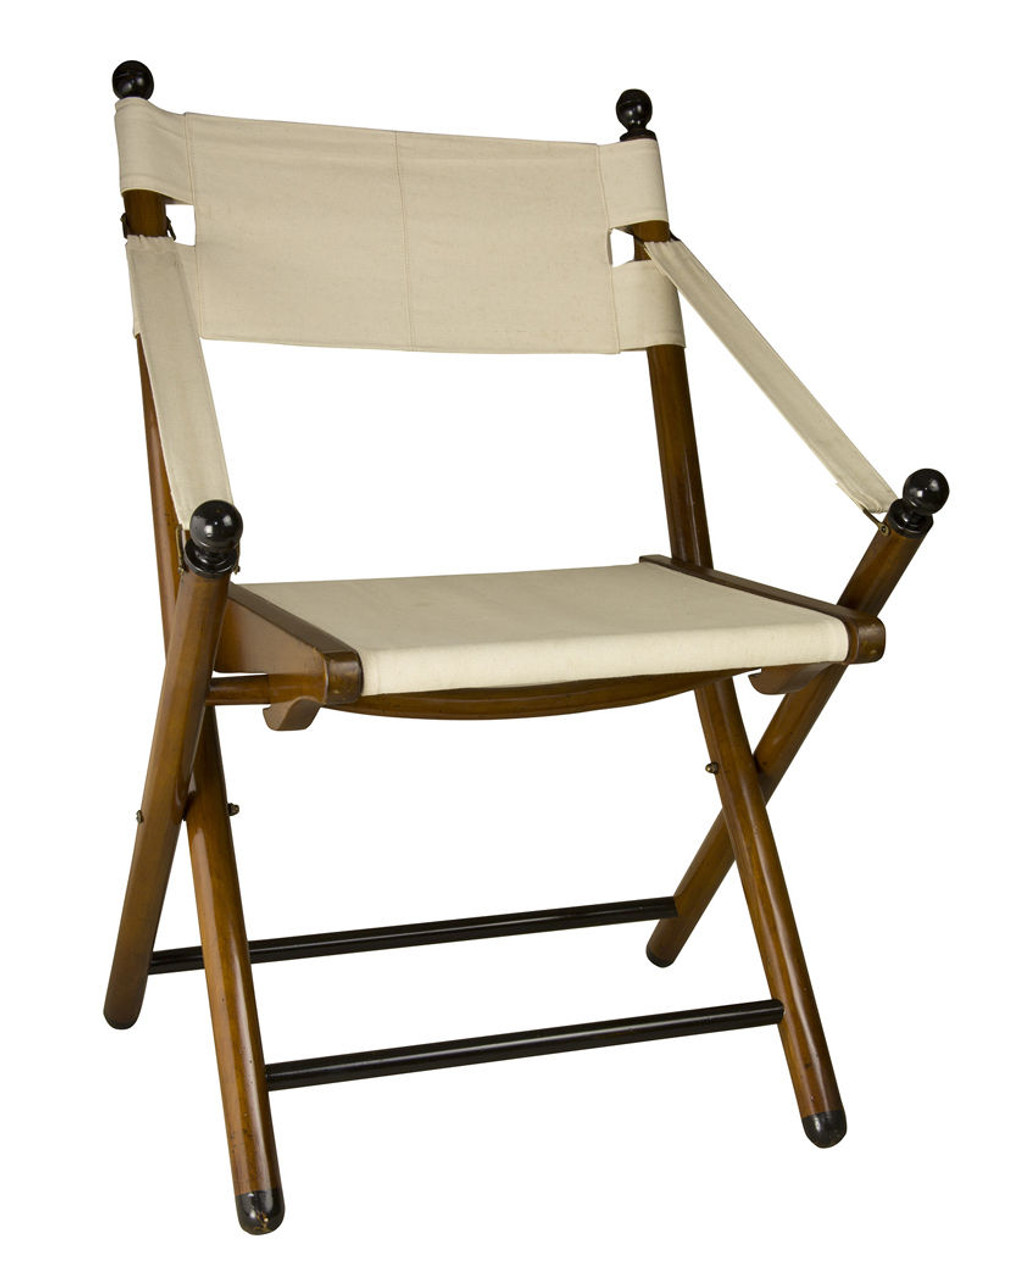 british military campaign style officer u0026 39 s chair